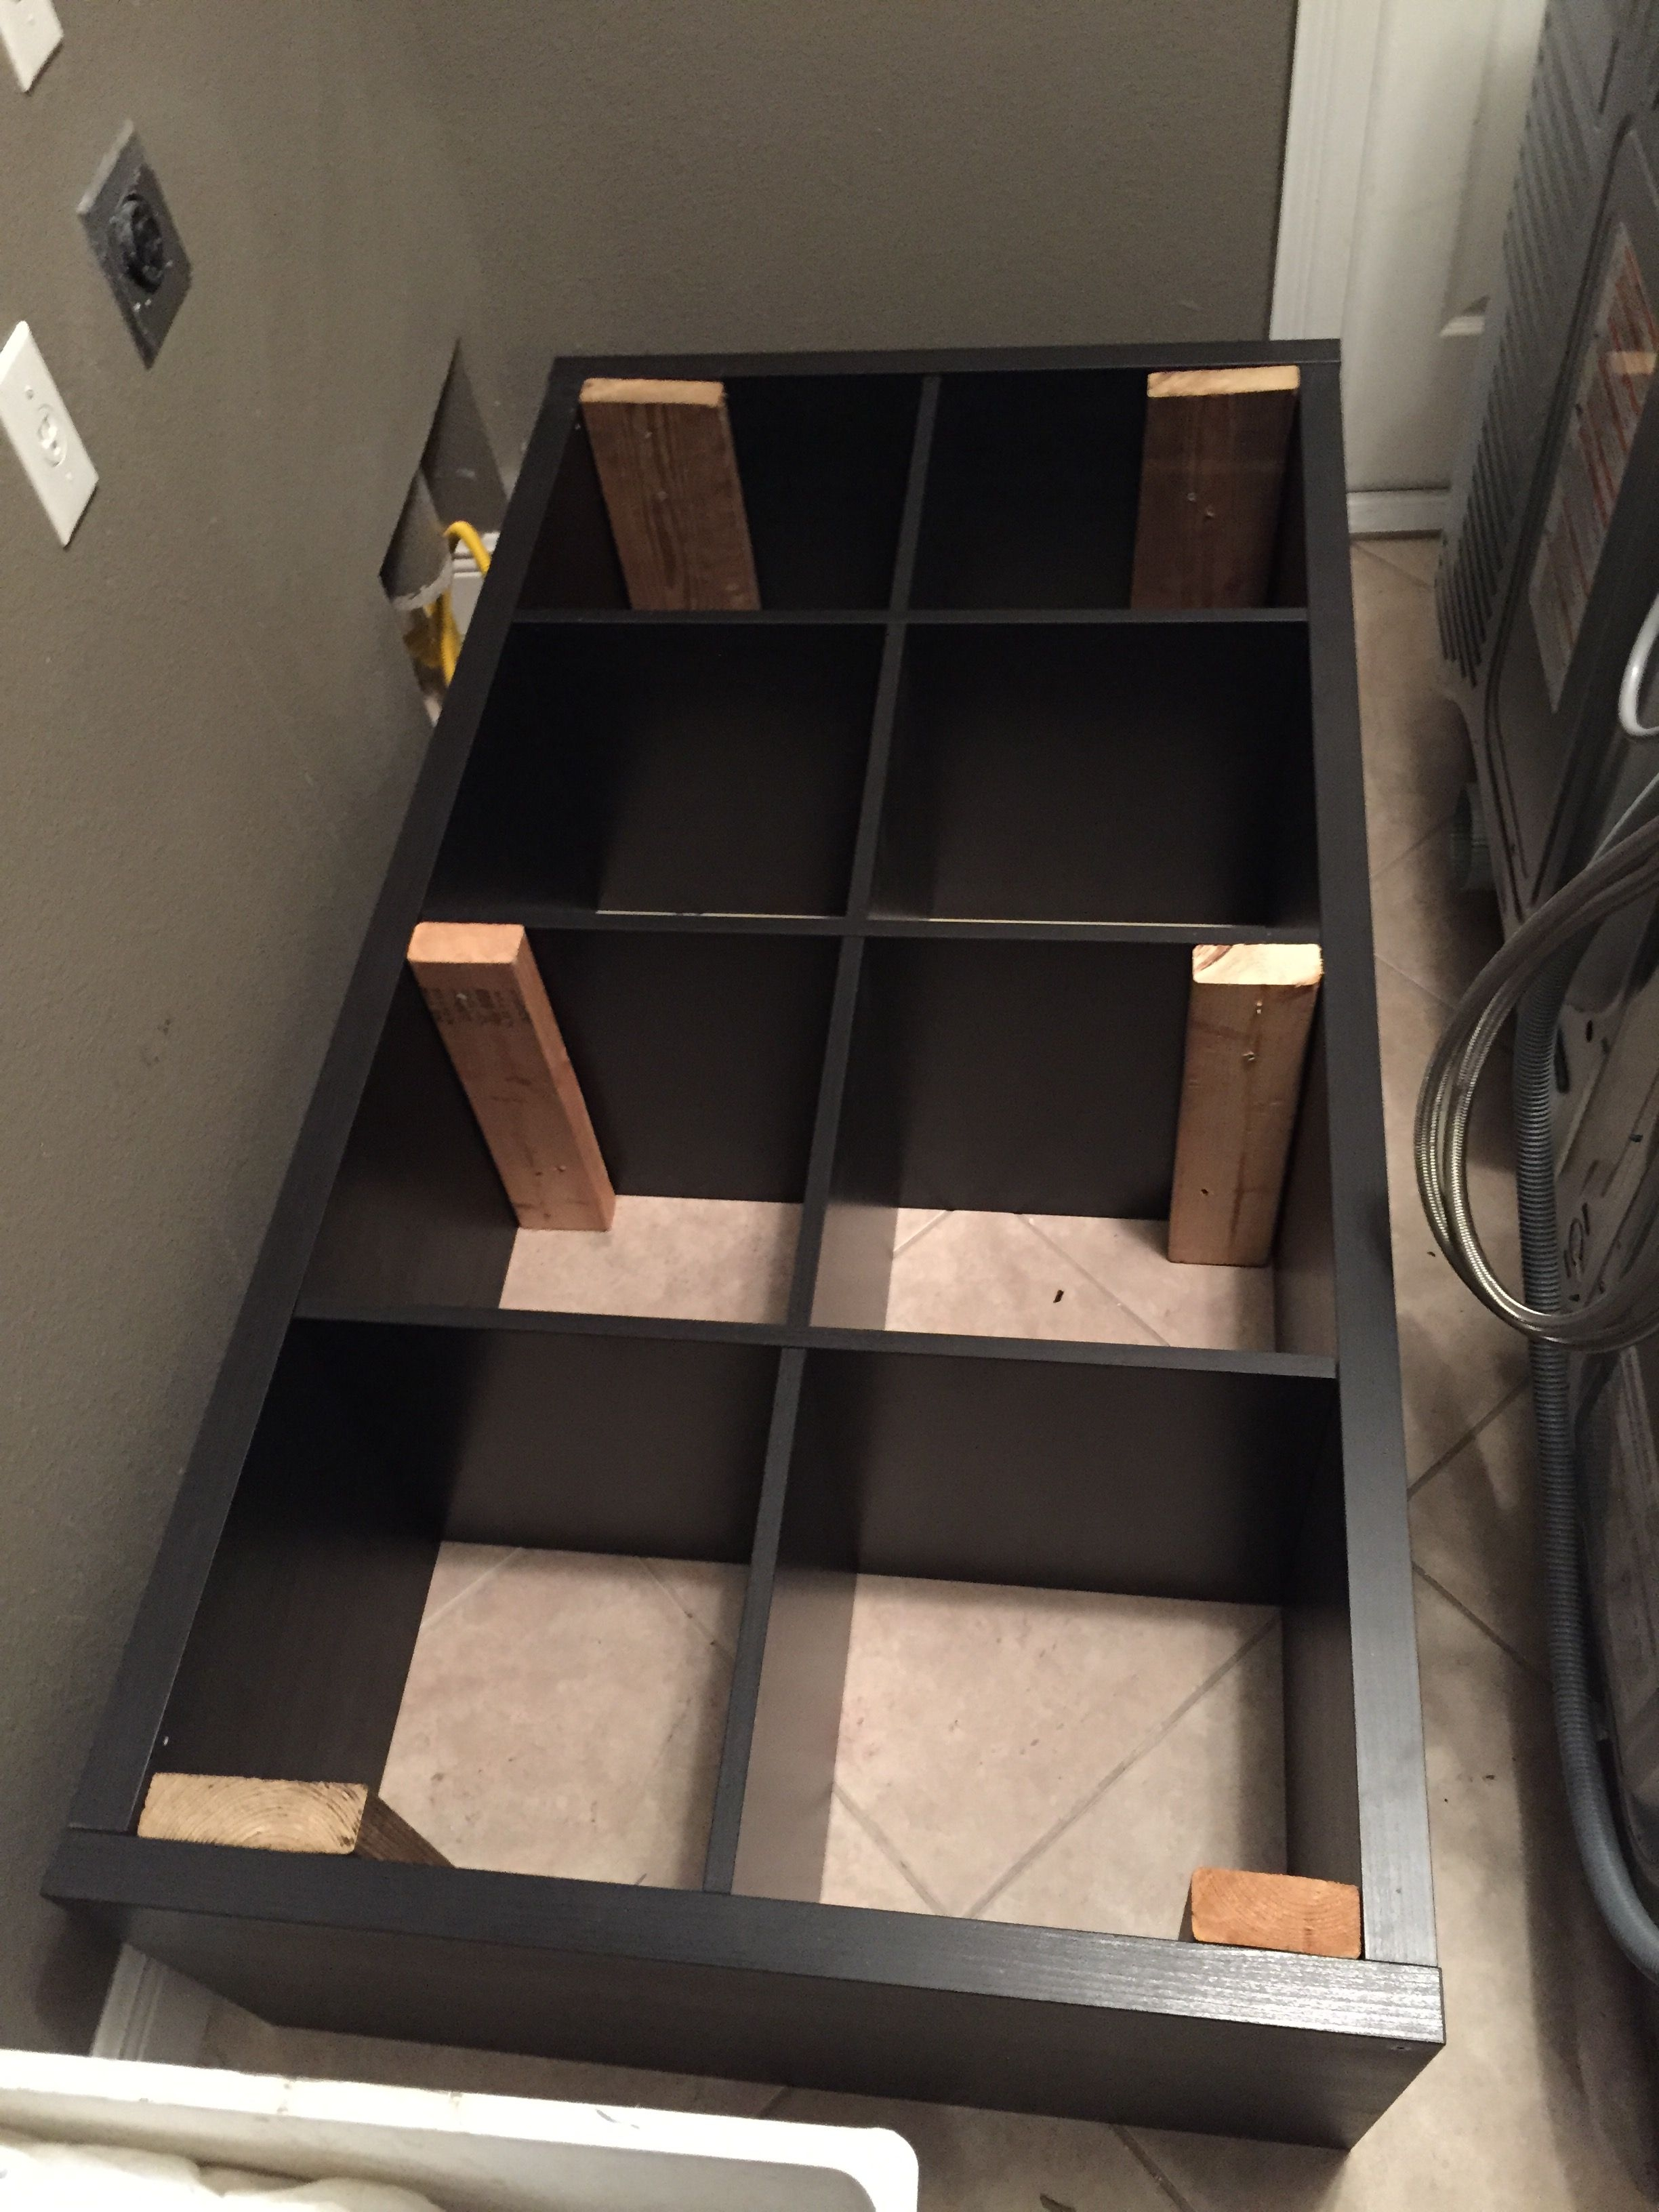 Converting an ikea Kallax book shelf into a washerdryer